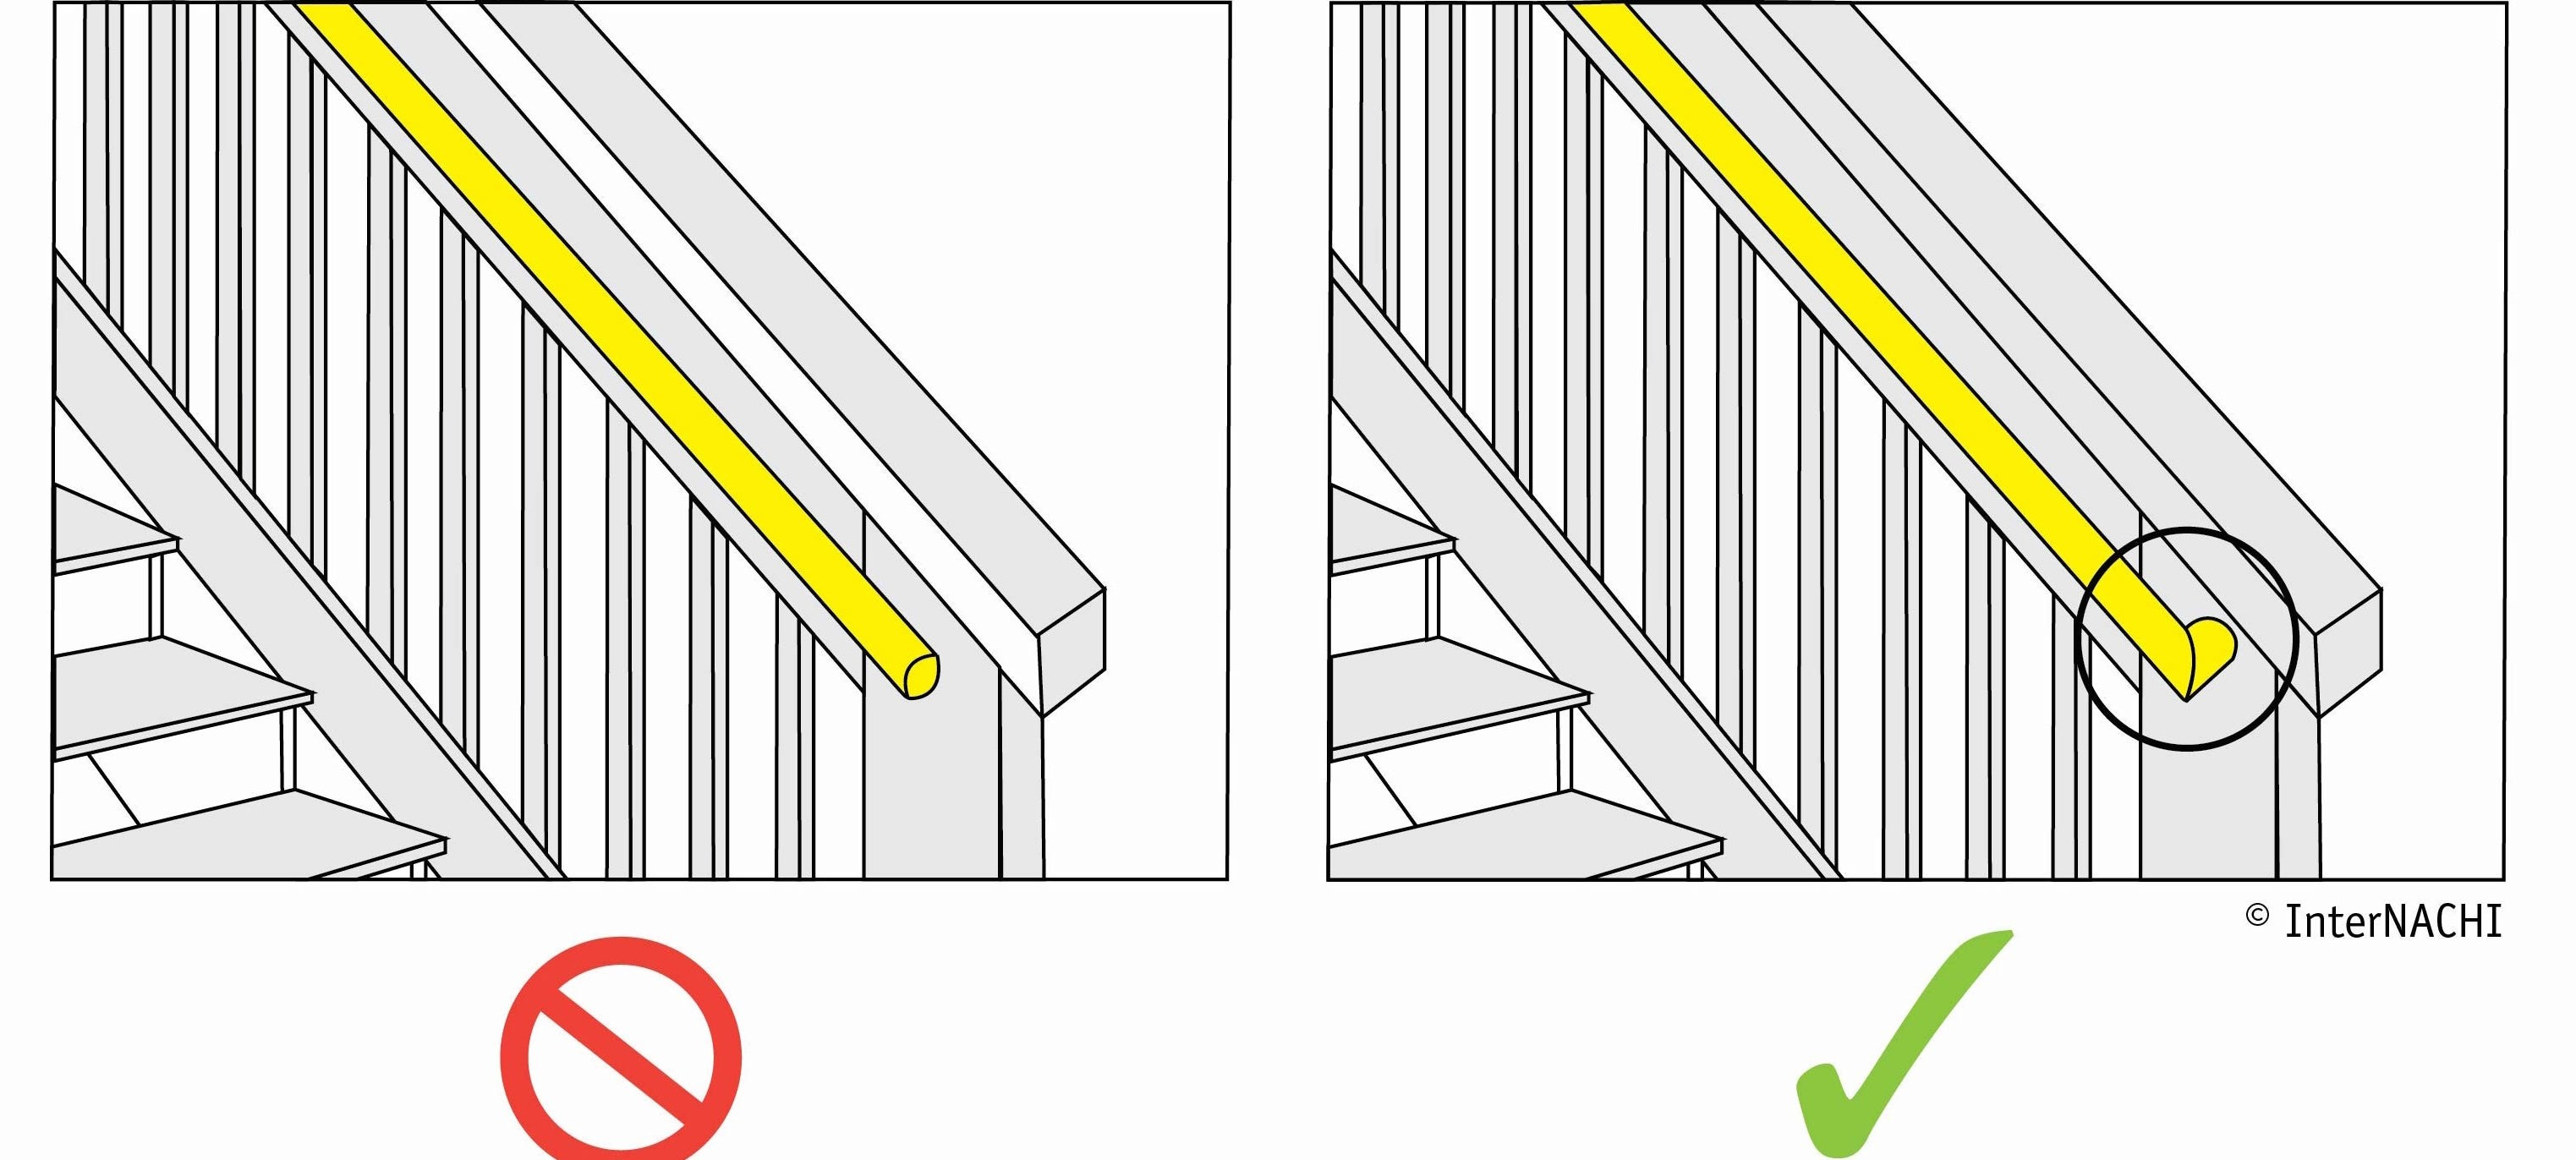 Inspecting A Deck – Brian Persons Front Range Home Inspections Ltd | Graspable Handrail For Deck Stairs | Simple | Made 2X4 | 2 Foot | Code Compliant | Tall